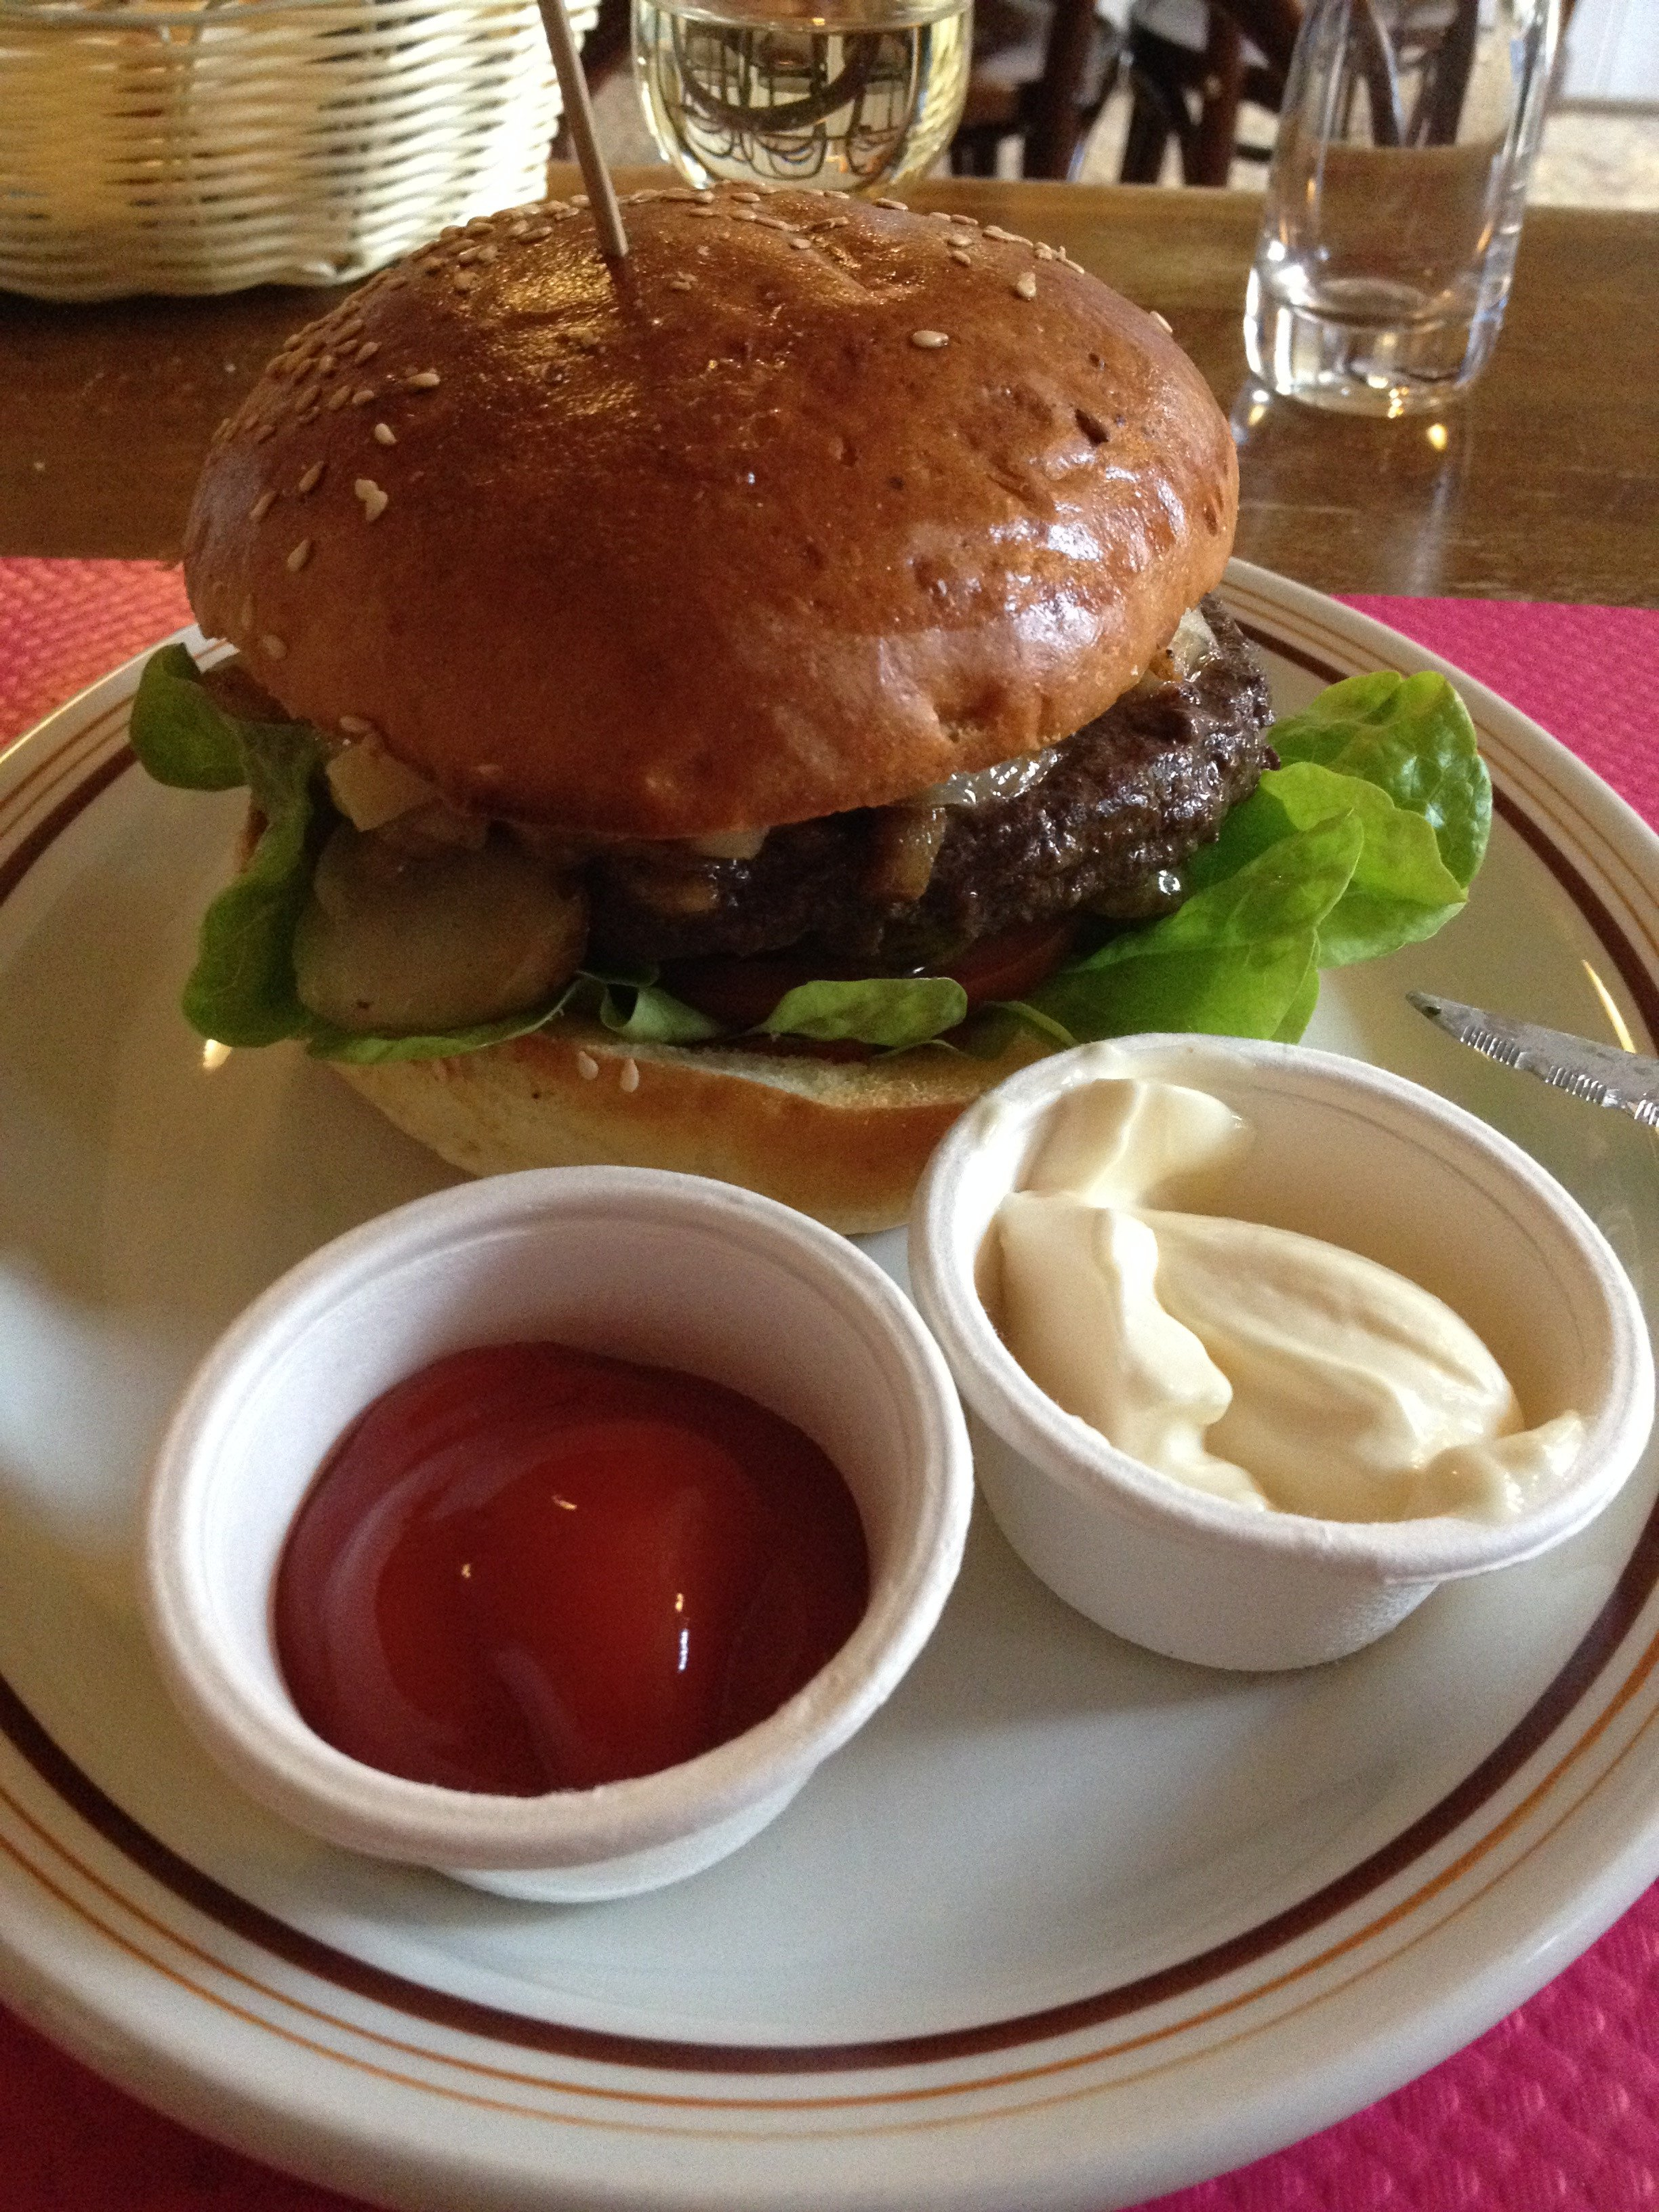 Le hamburger Alpin